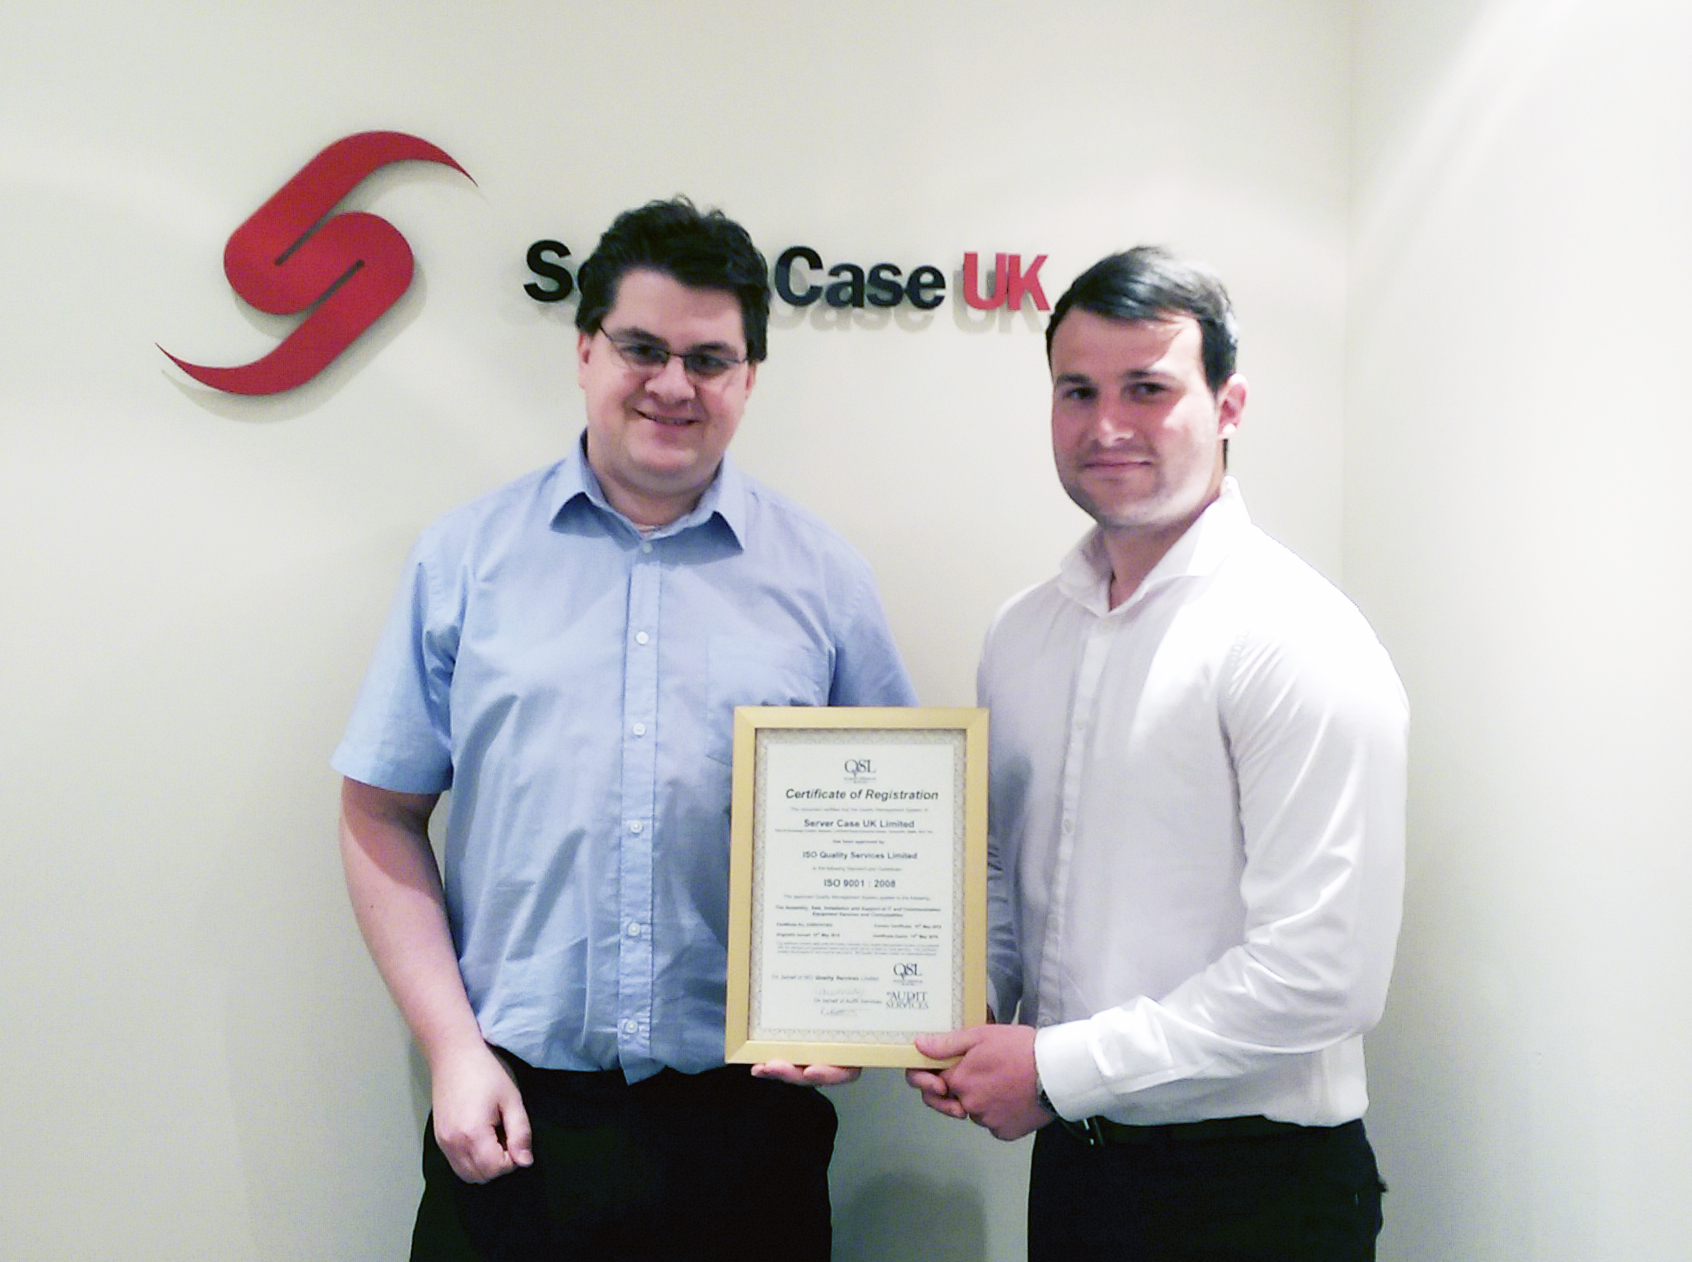 Server Case UK is now ISO 9001:2008 Certified